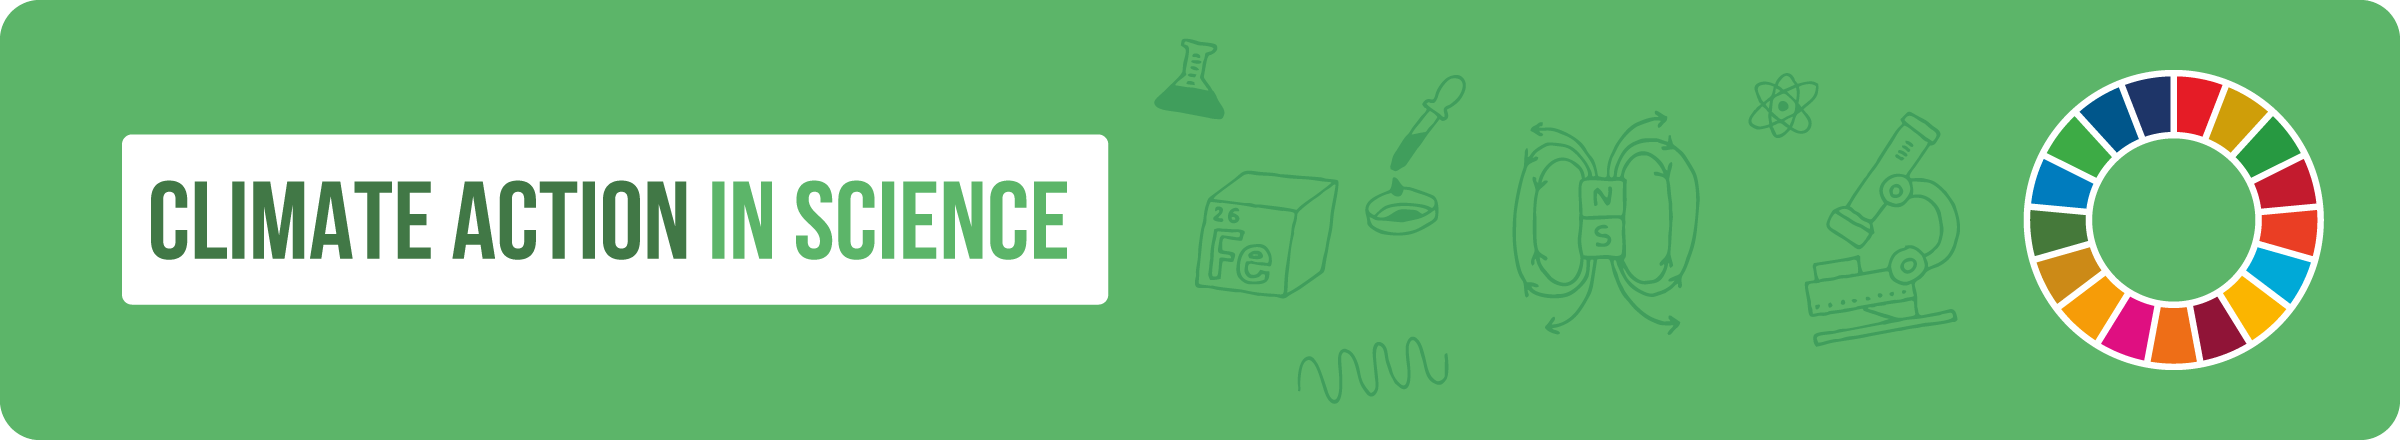 Climate Action_Science Header